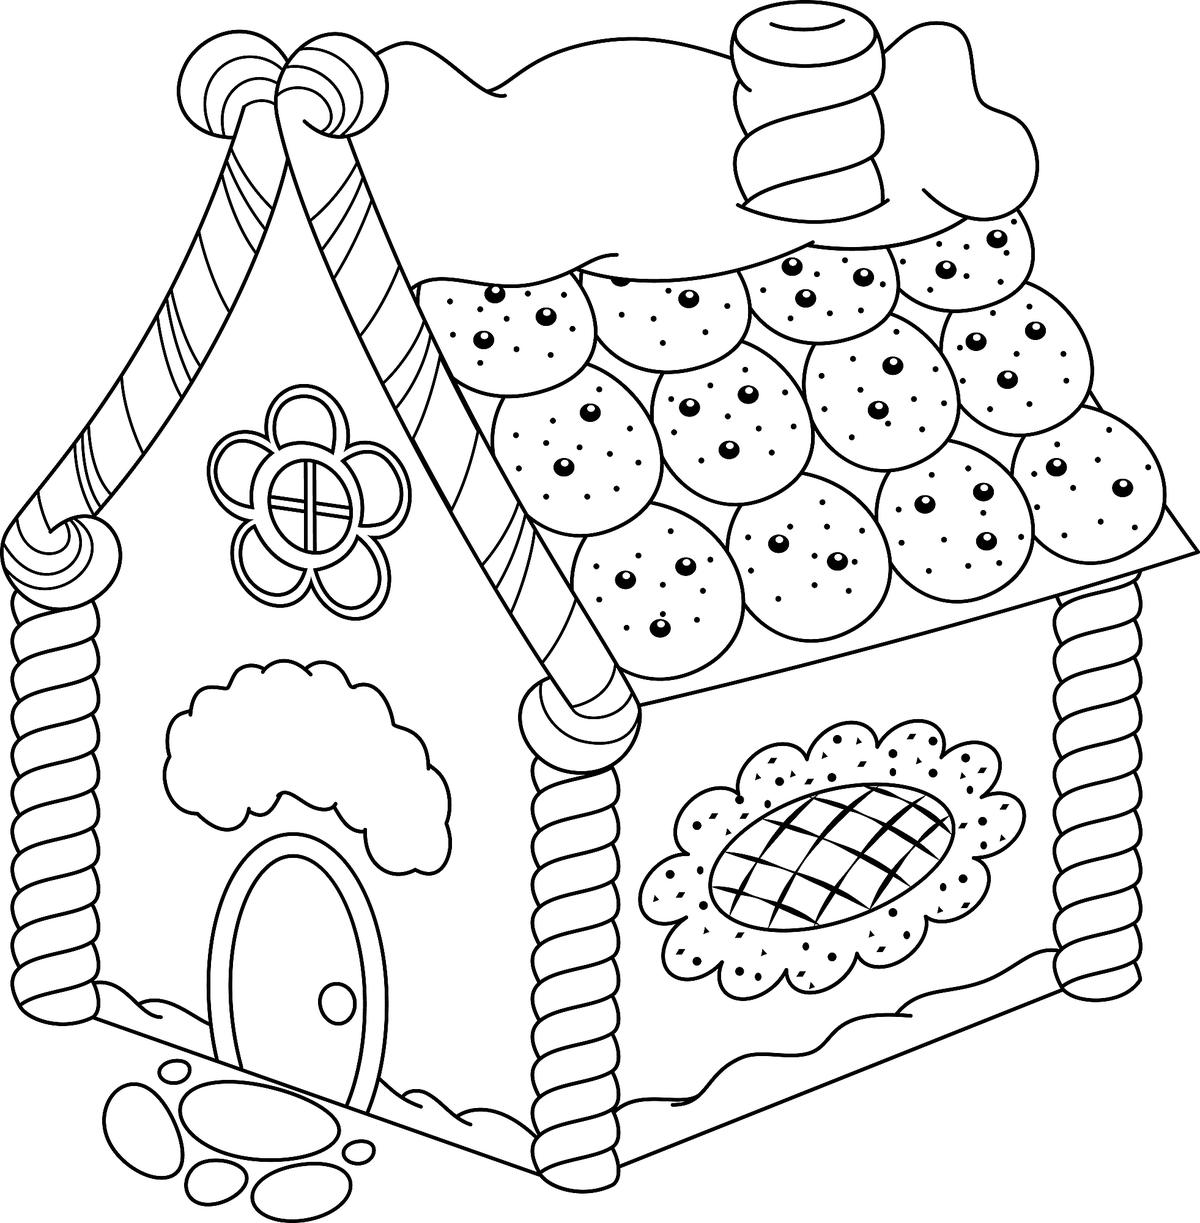 Gingerbread House Coloring Pages: Printable Coloring, Activity ...